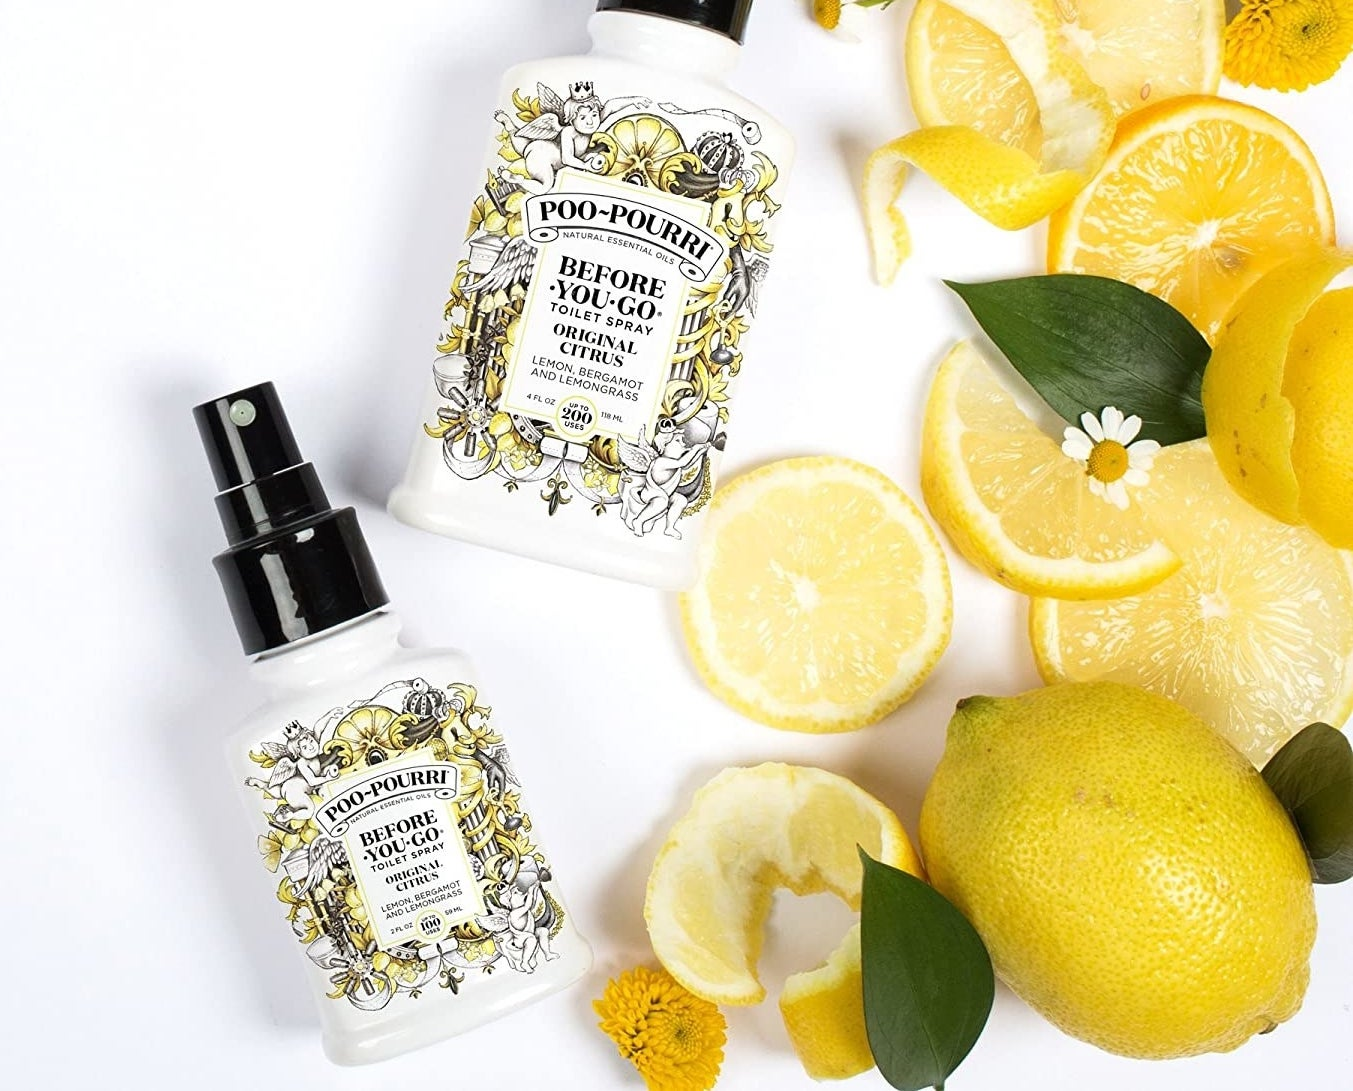 bottles of poo-pourri next to lemons